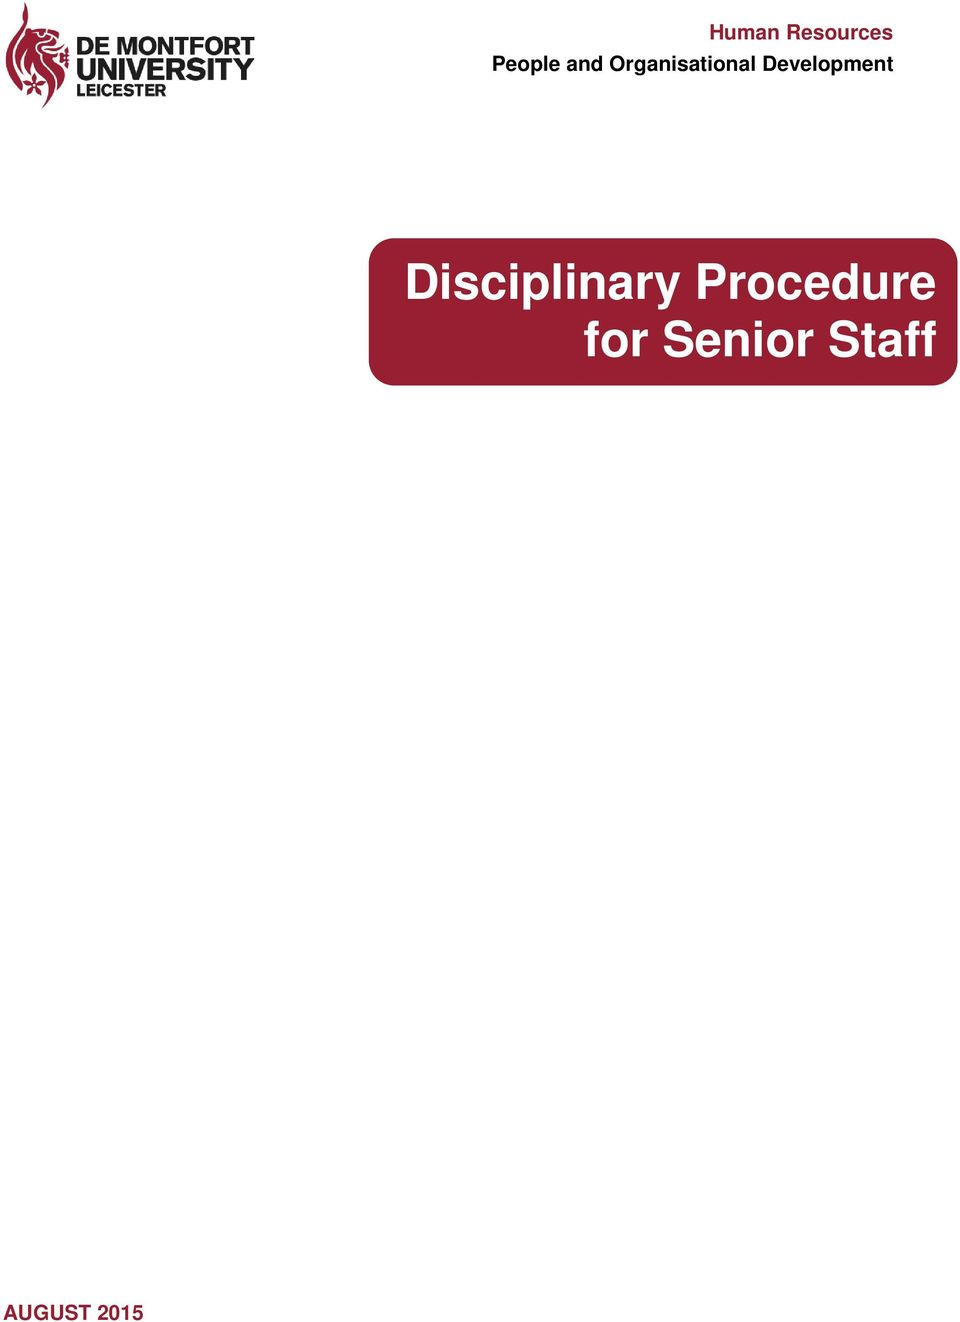 Disciplinary Procedure for